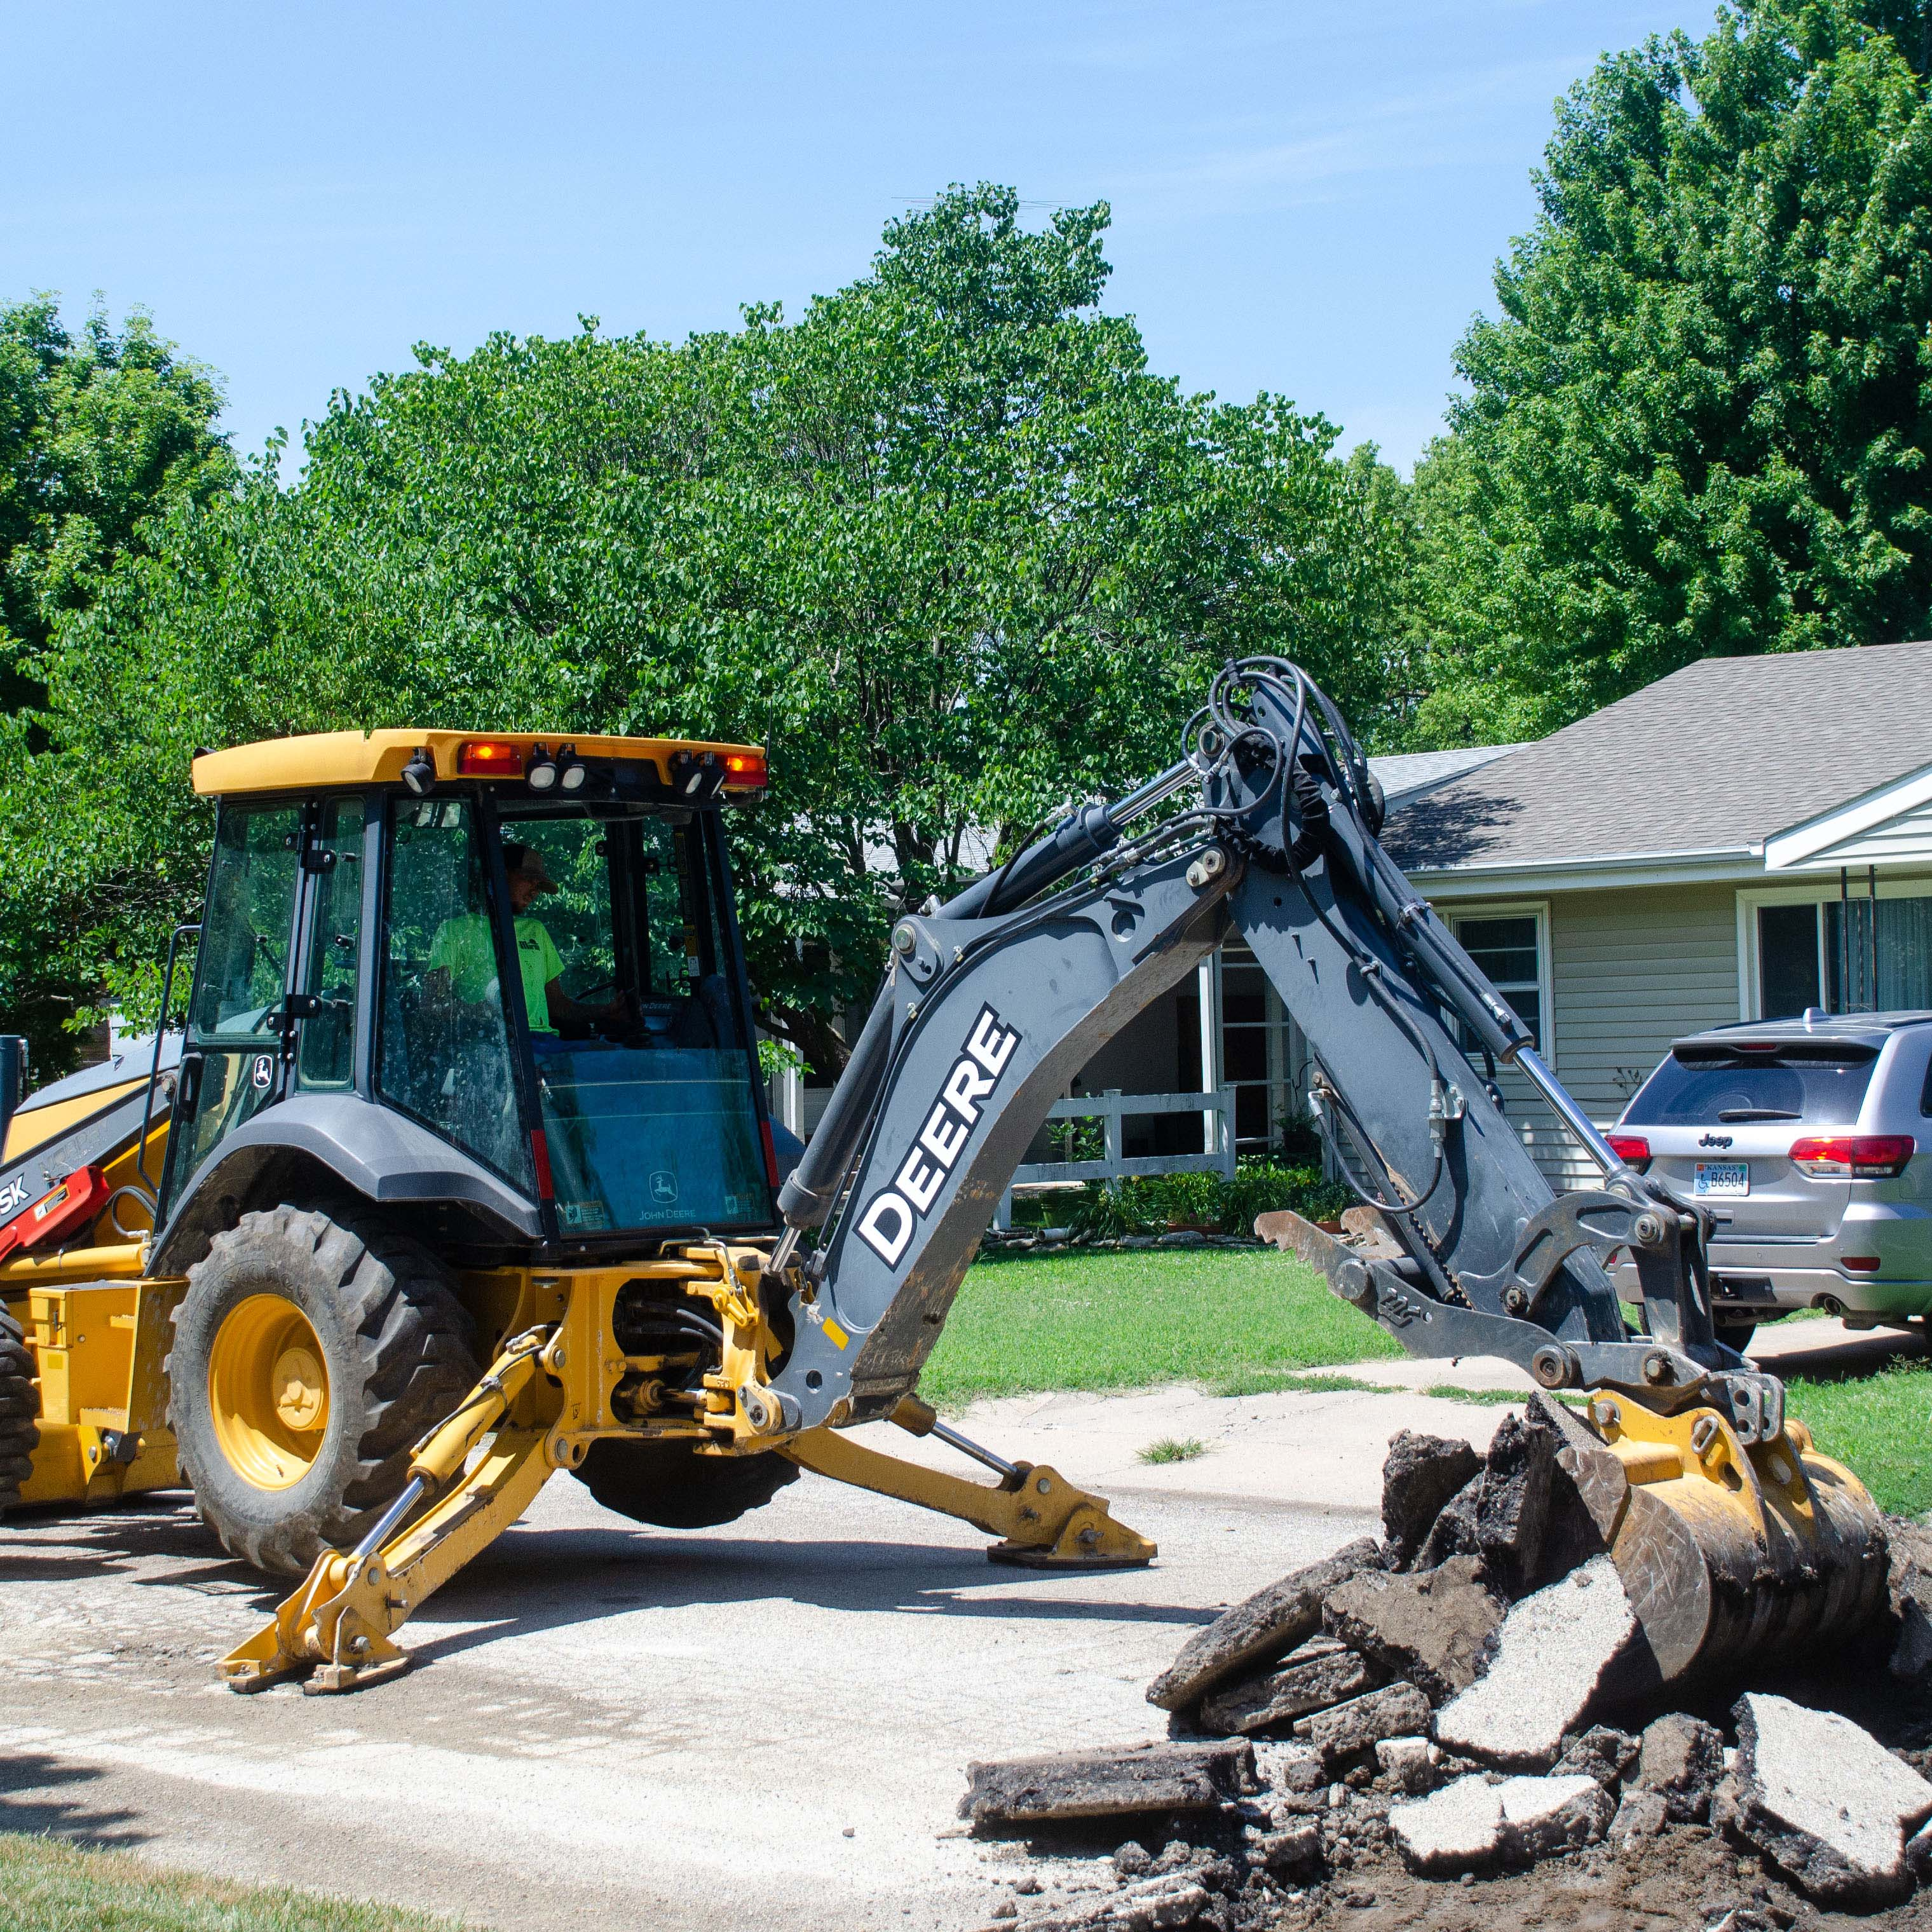 Mona Hein, left, accepts a gift for her years of service from Mayor Dolores Dalke at the Hillsboro City Council meeting Nov. 17. Hein was honored for 25 years of service in the utility billing department. Others who received honors were police officer David Funk for 15 years, police chief Dan Kinning for 20 years, and councilman Bob Watson for 8 years on Hillsboro City Council.